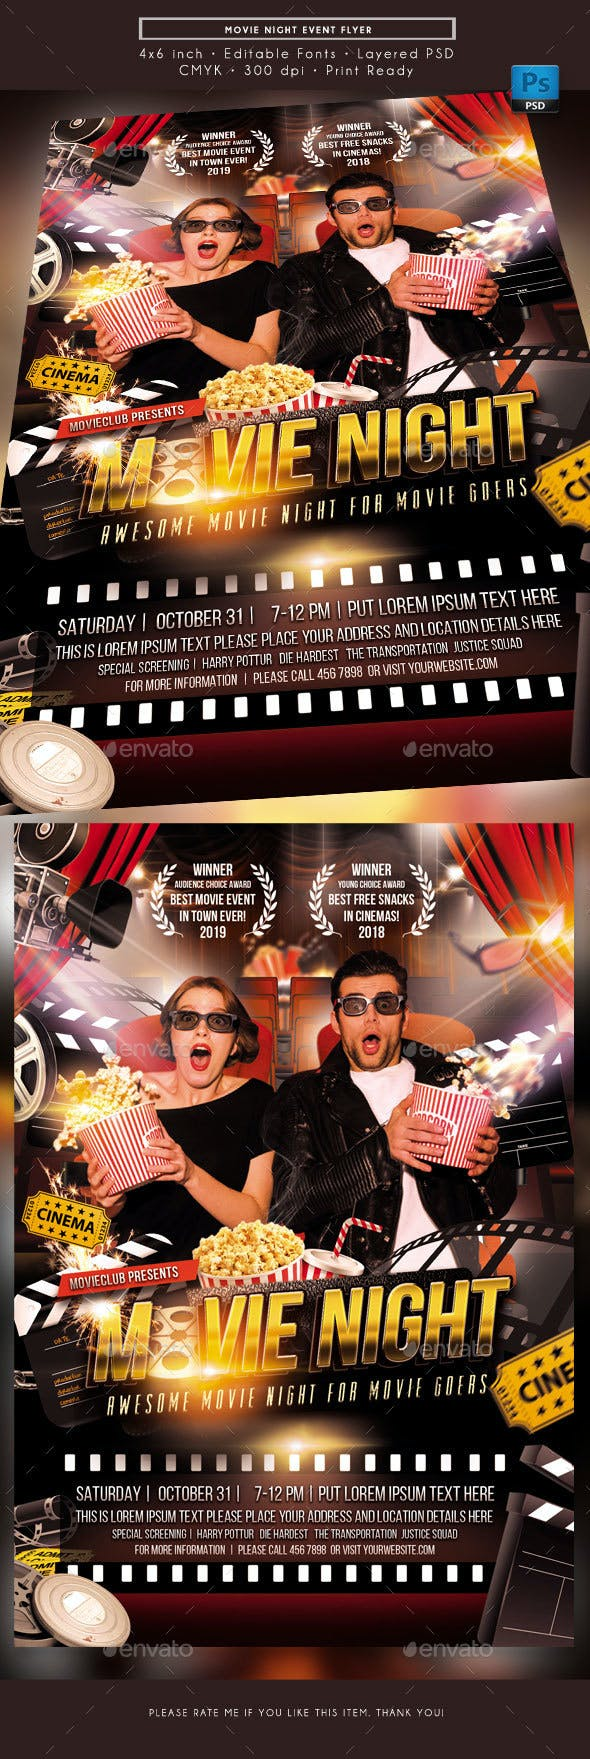 movie night event flyer by rudydesign graphicriver